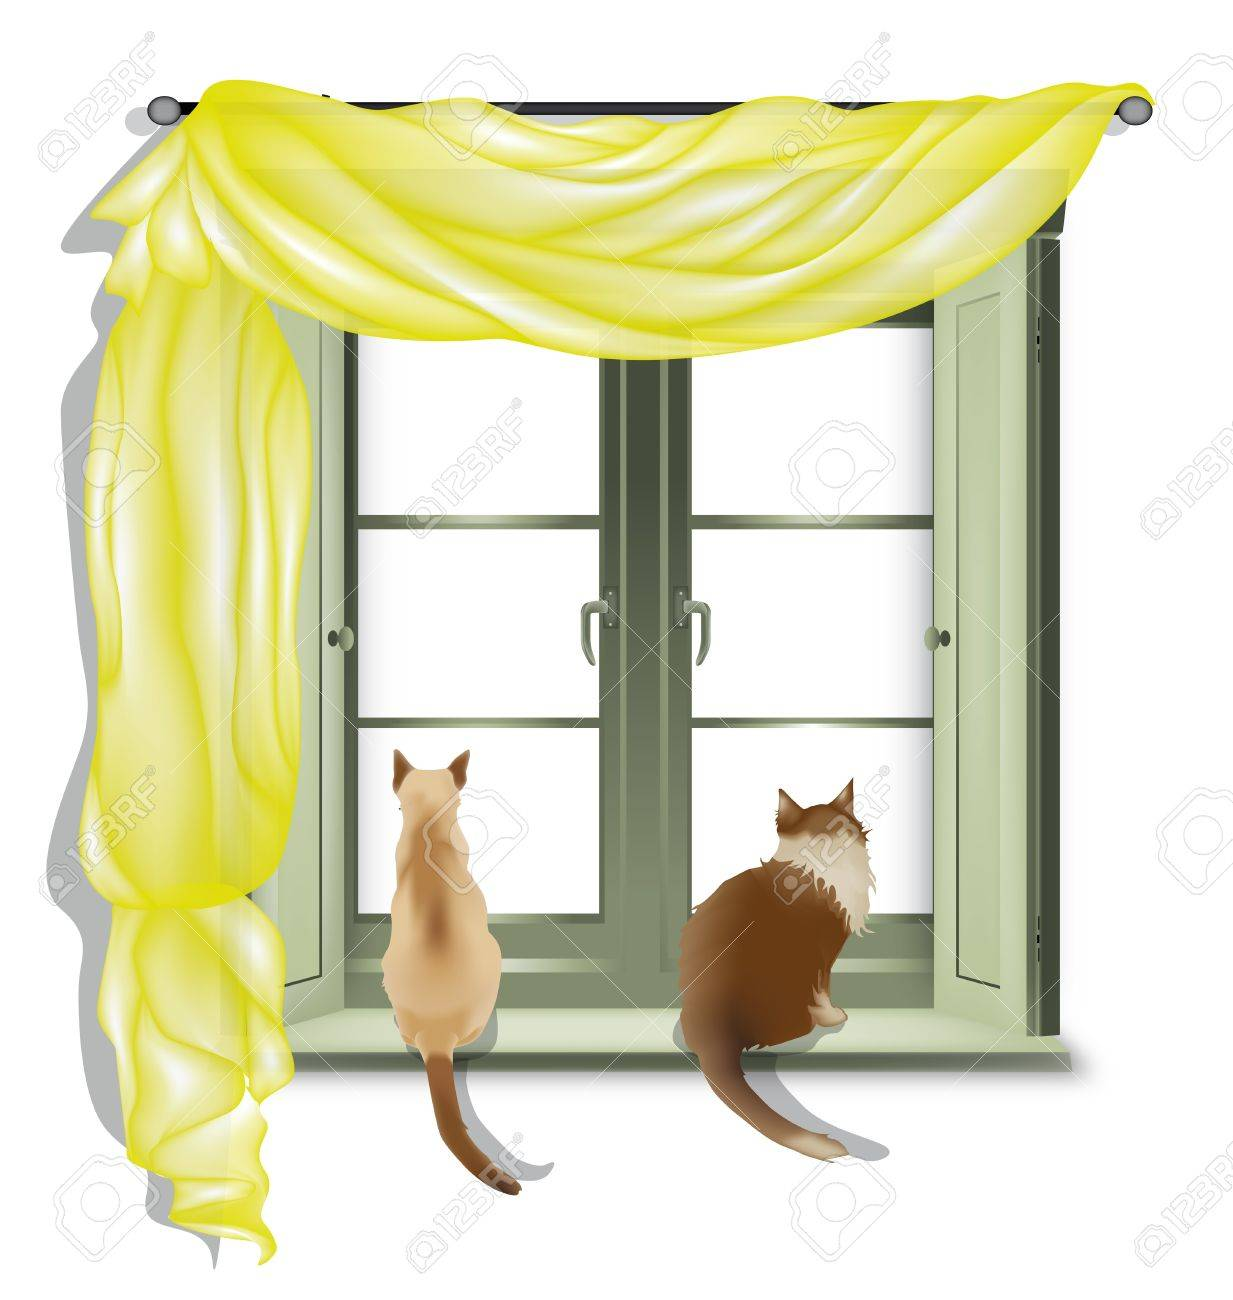 Two cats on inner window sill looking out, isolated on white background Stock Vector - 14163815